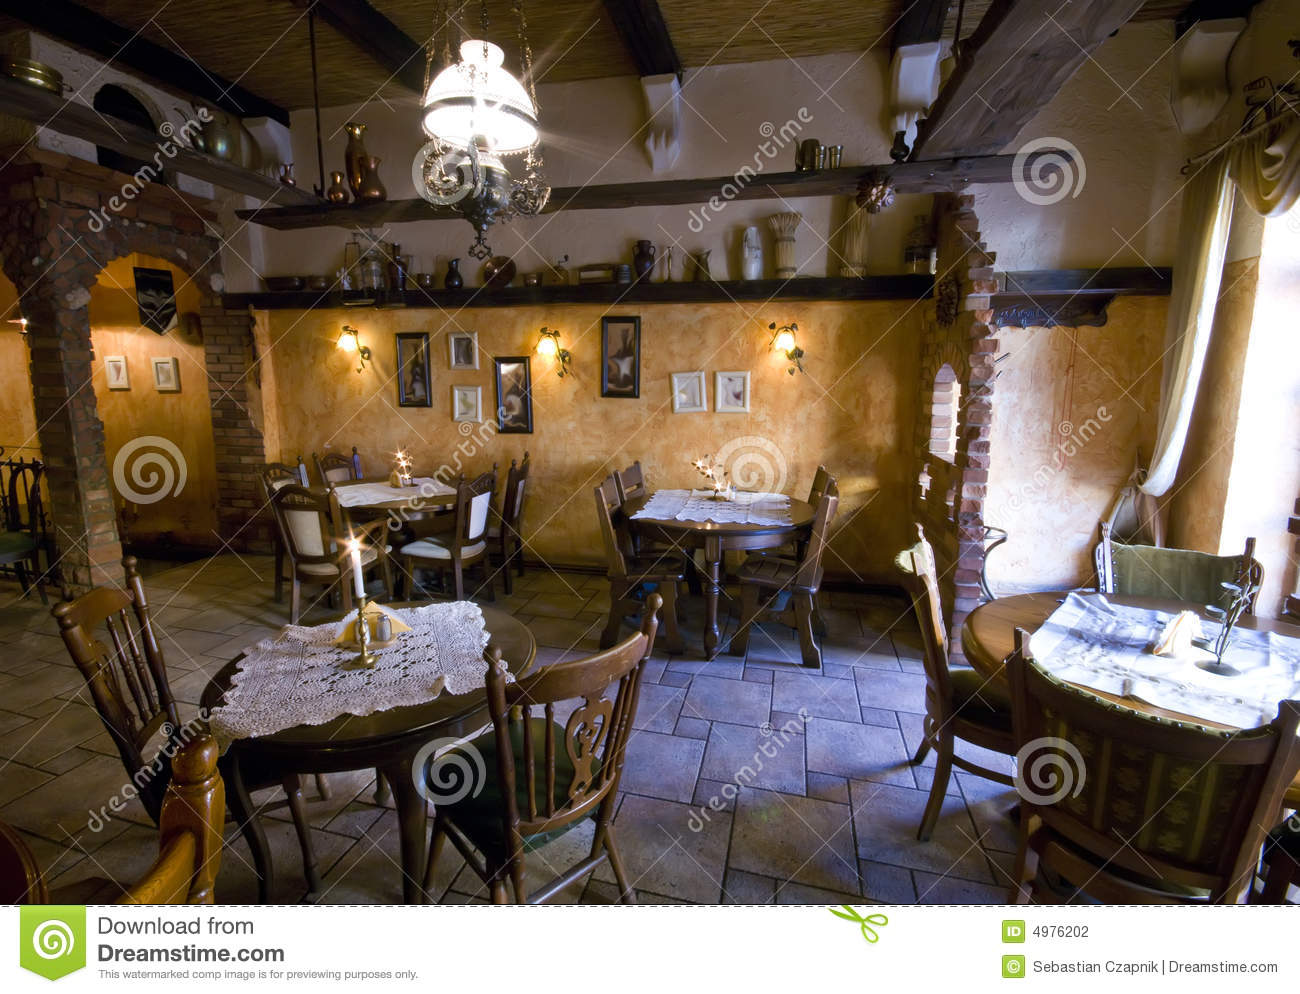 Rustic restaurant stock photography image 4976202 for Adornos para bares rusticos